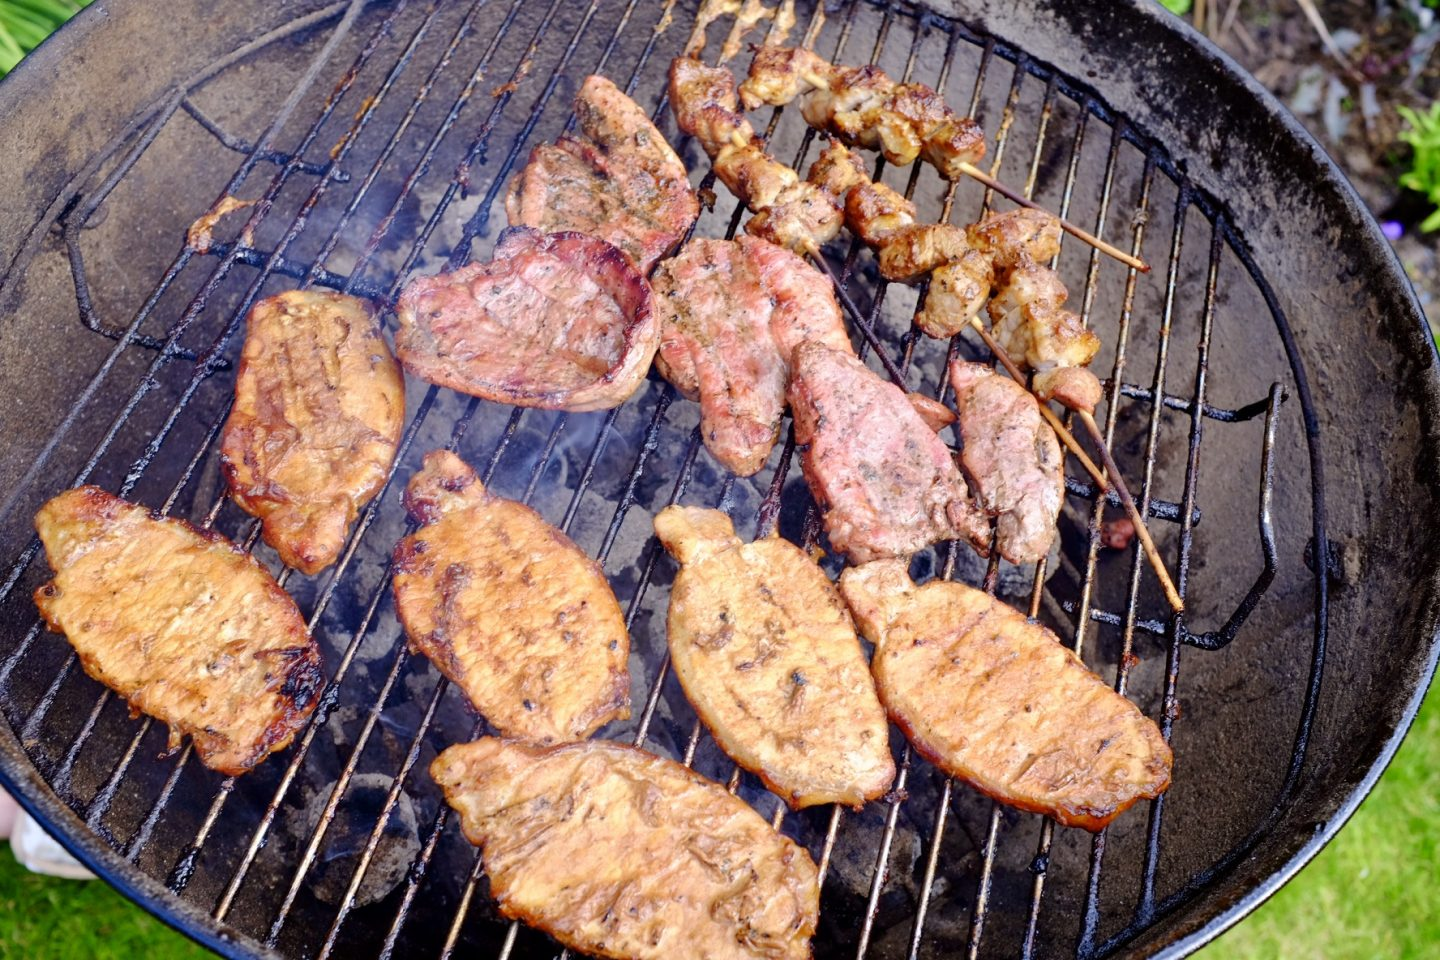 meat from Jacks cooking on a charcoal BBQ